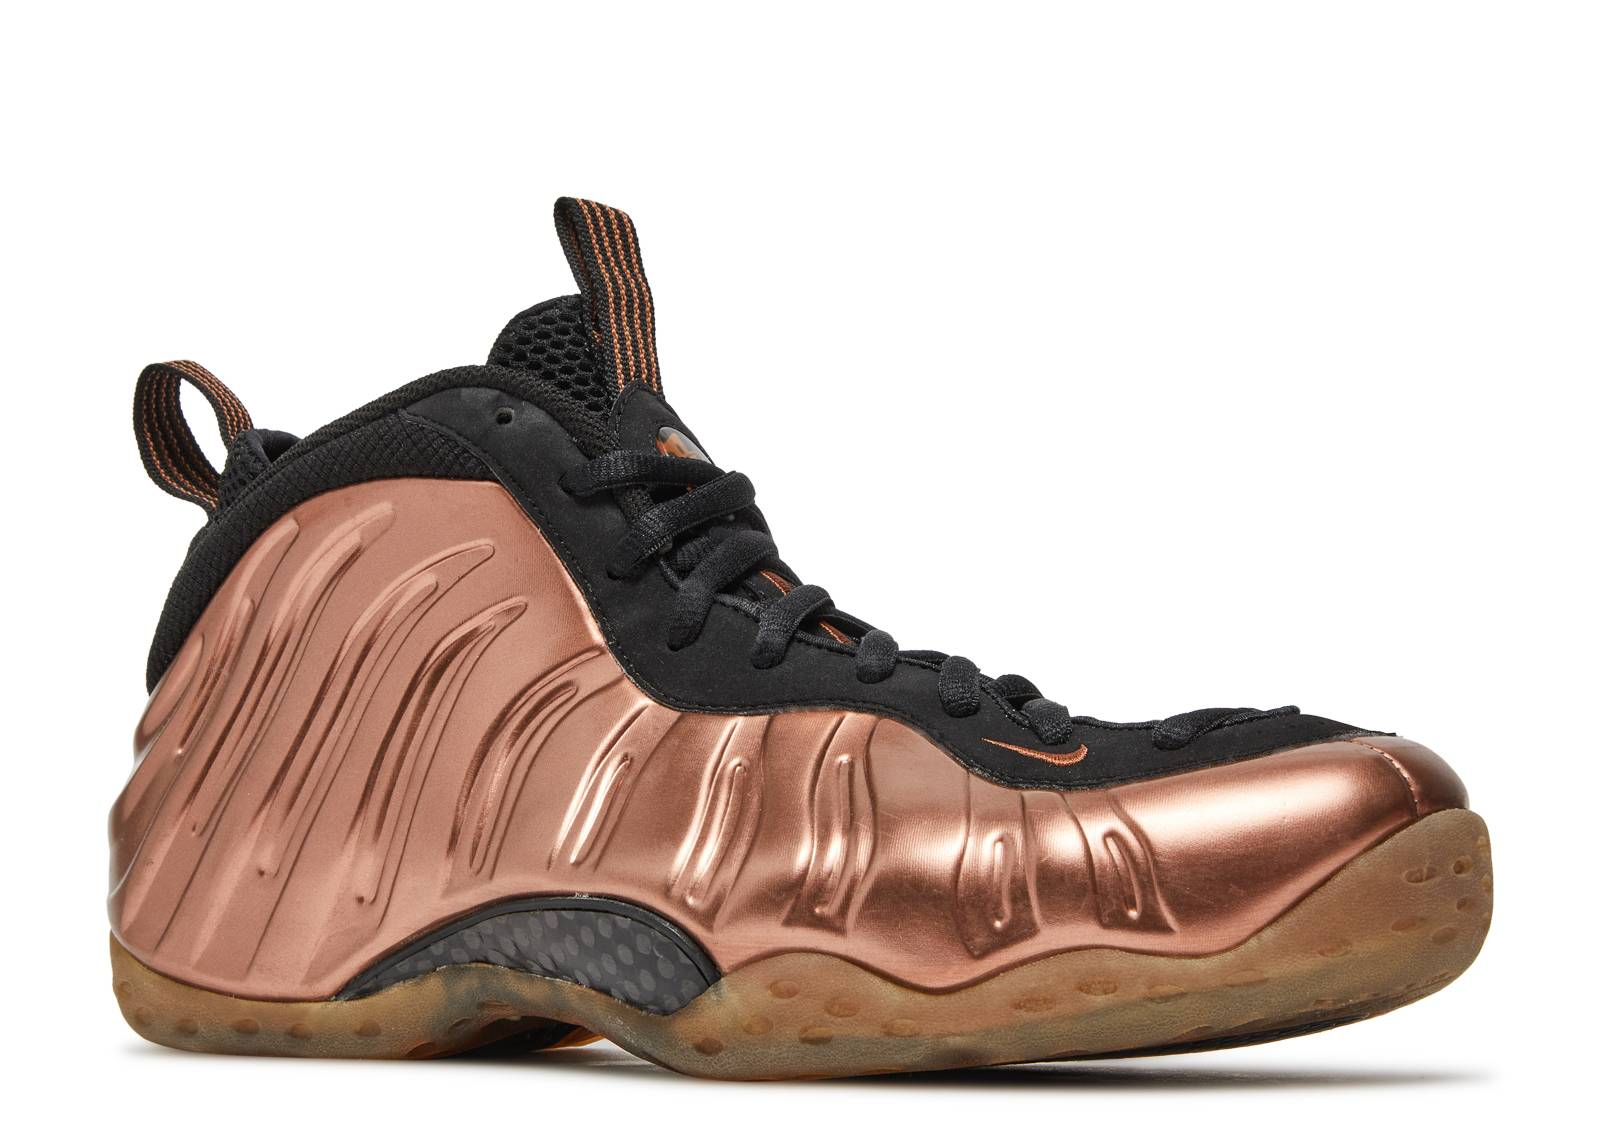 Air Foamposite One 'Dirty Copper' - 314996-081 - Size 8.5 - xOEthv